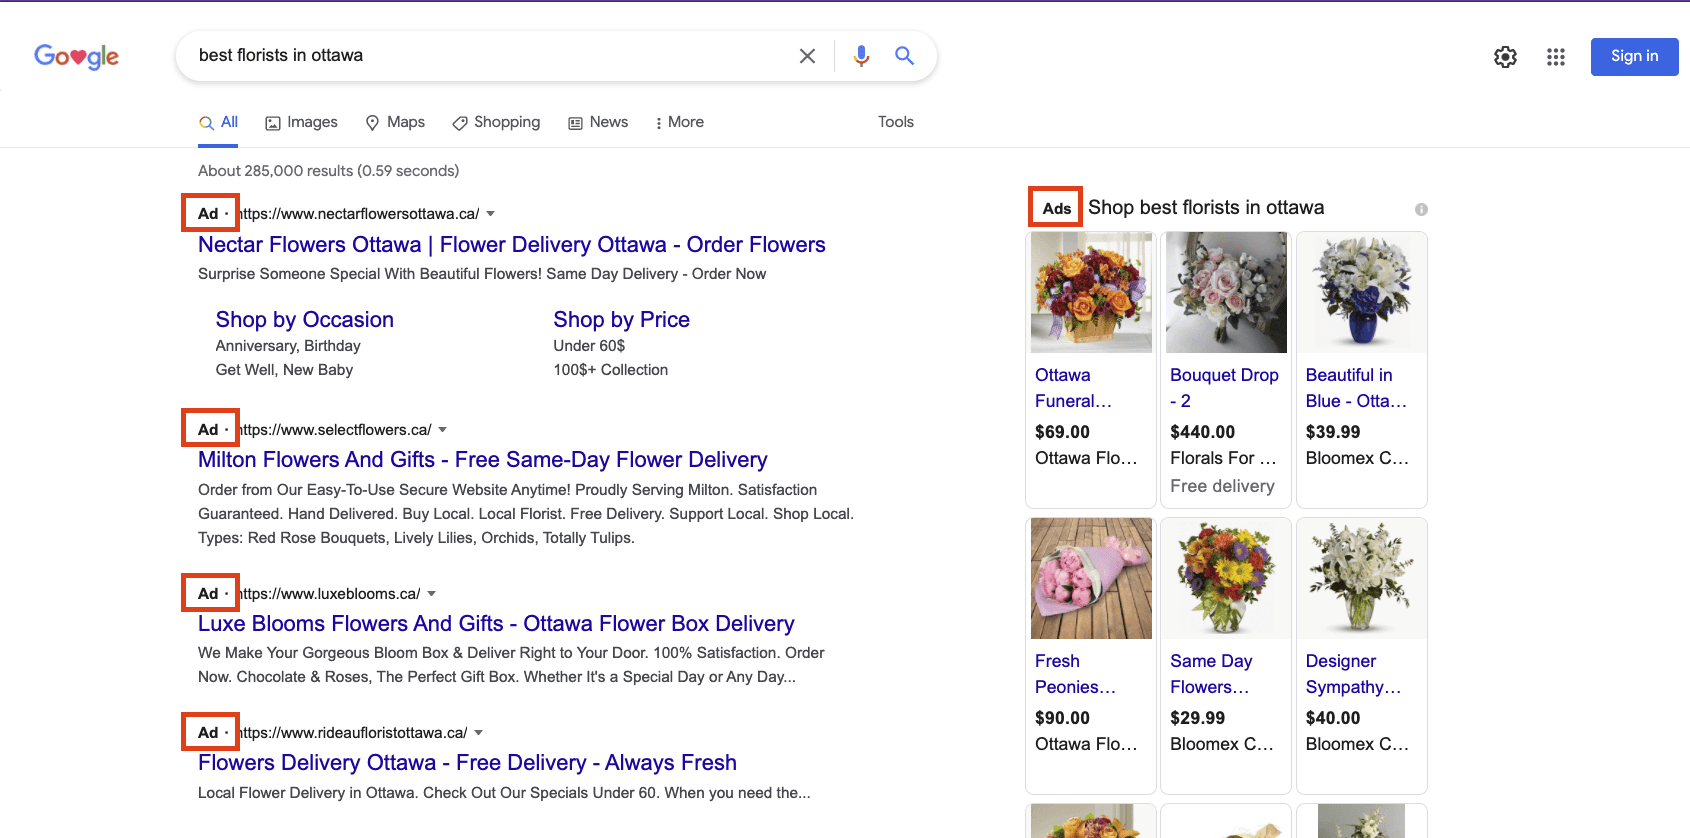 Screenshot of a google search result page showing ads